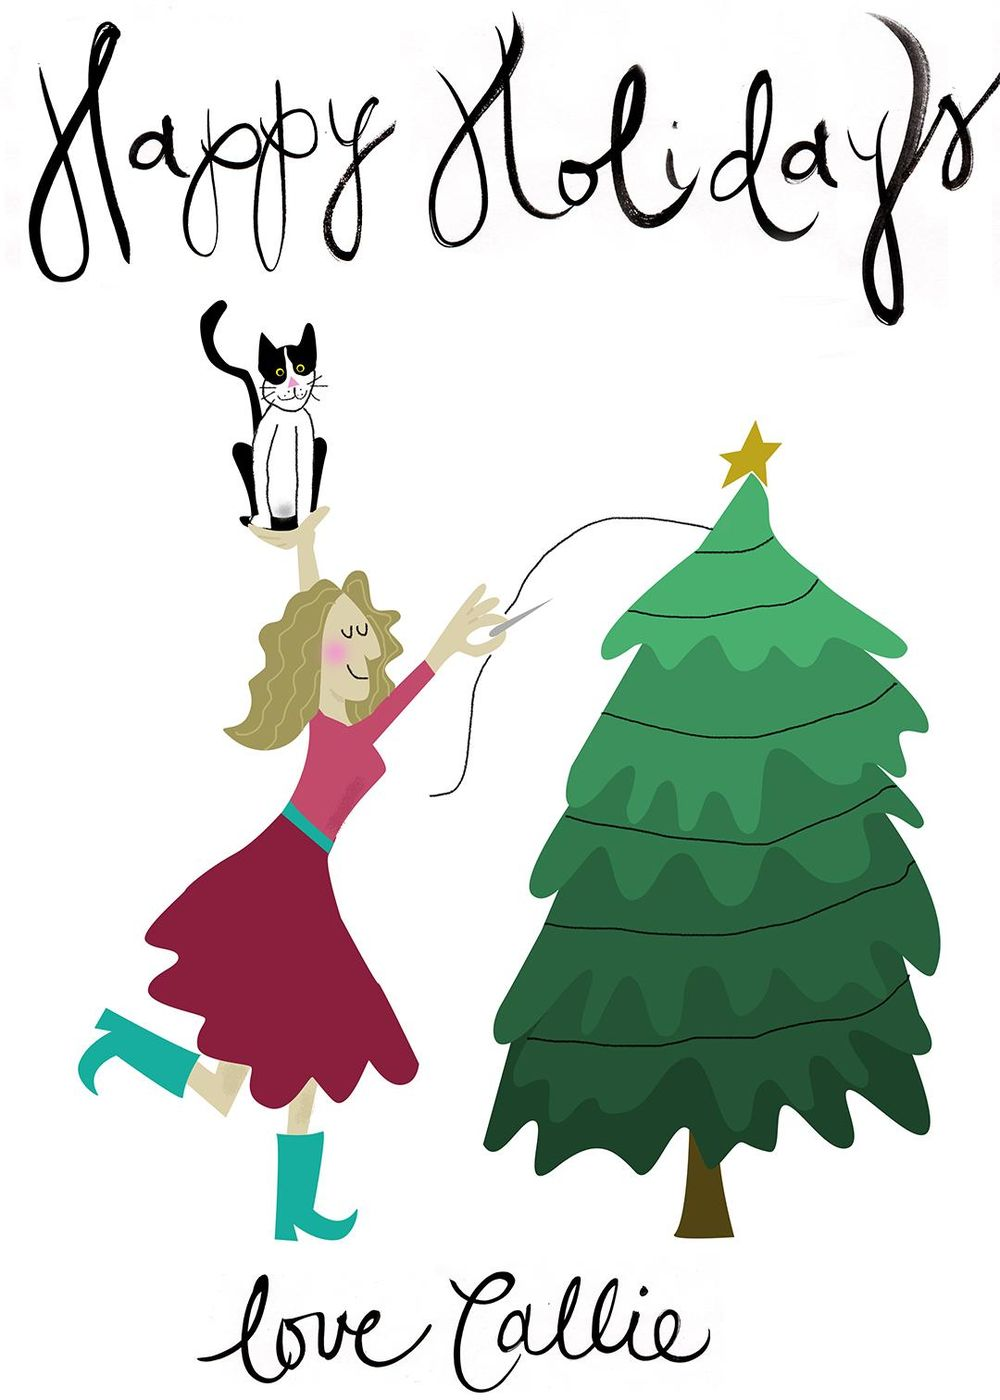 Holiday Card Inspired by Odd Bodies Class - image 1 - student project